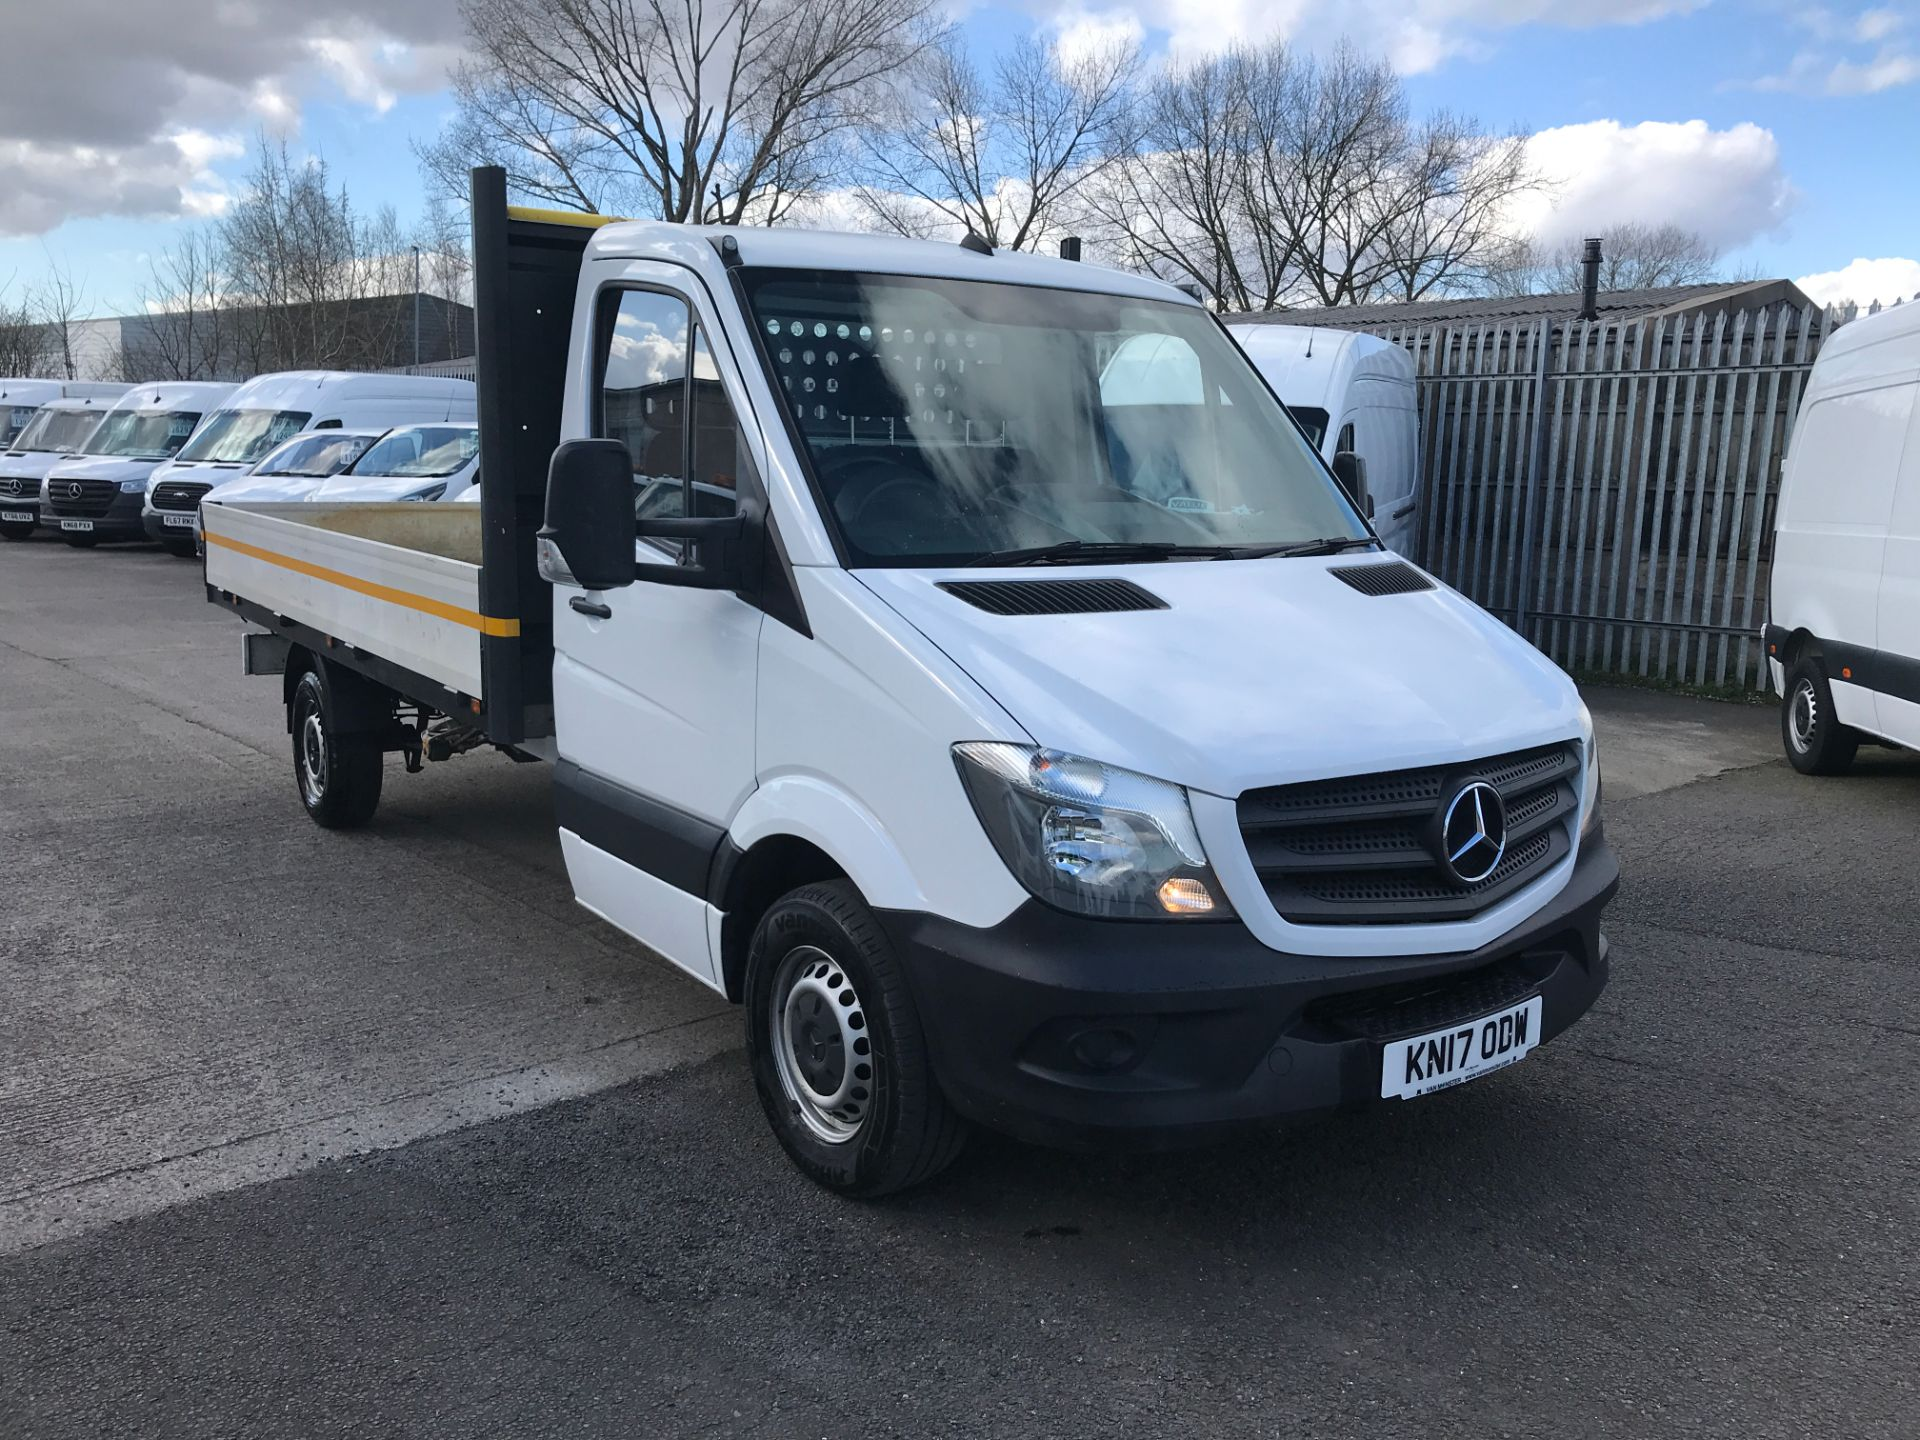 2017 Mercedes-Benz Sprinter 314CDI 13FT DROPSIDE 140PS EURO 6 (KN17ODW)